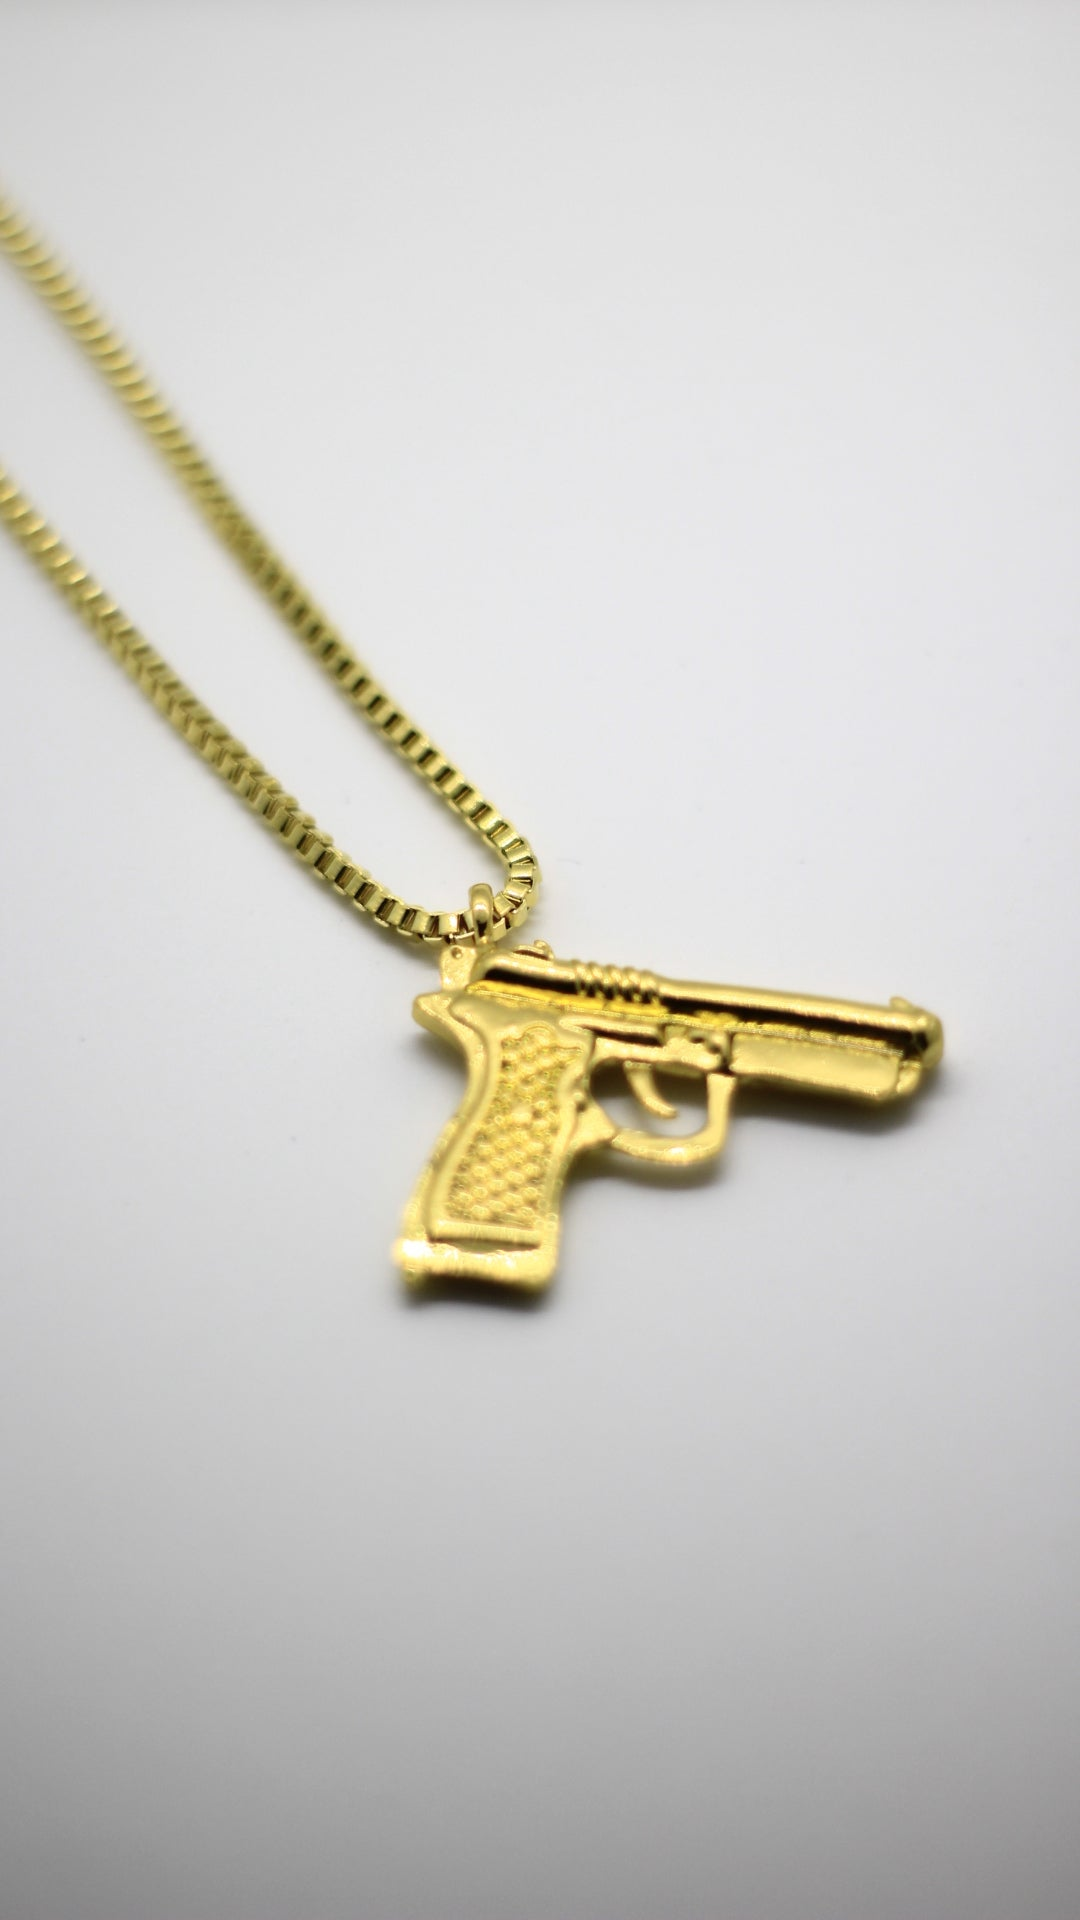 Image of Golden Gun Chain